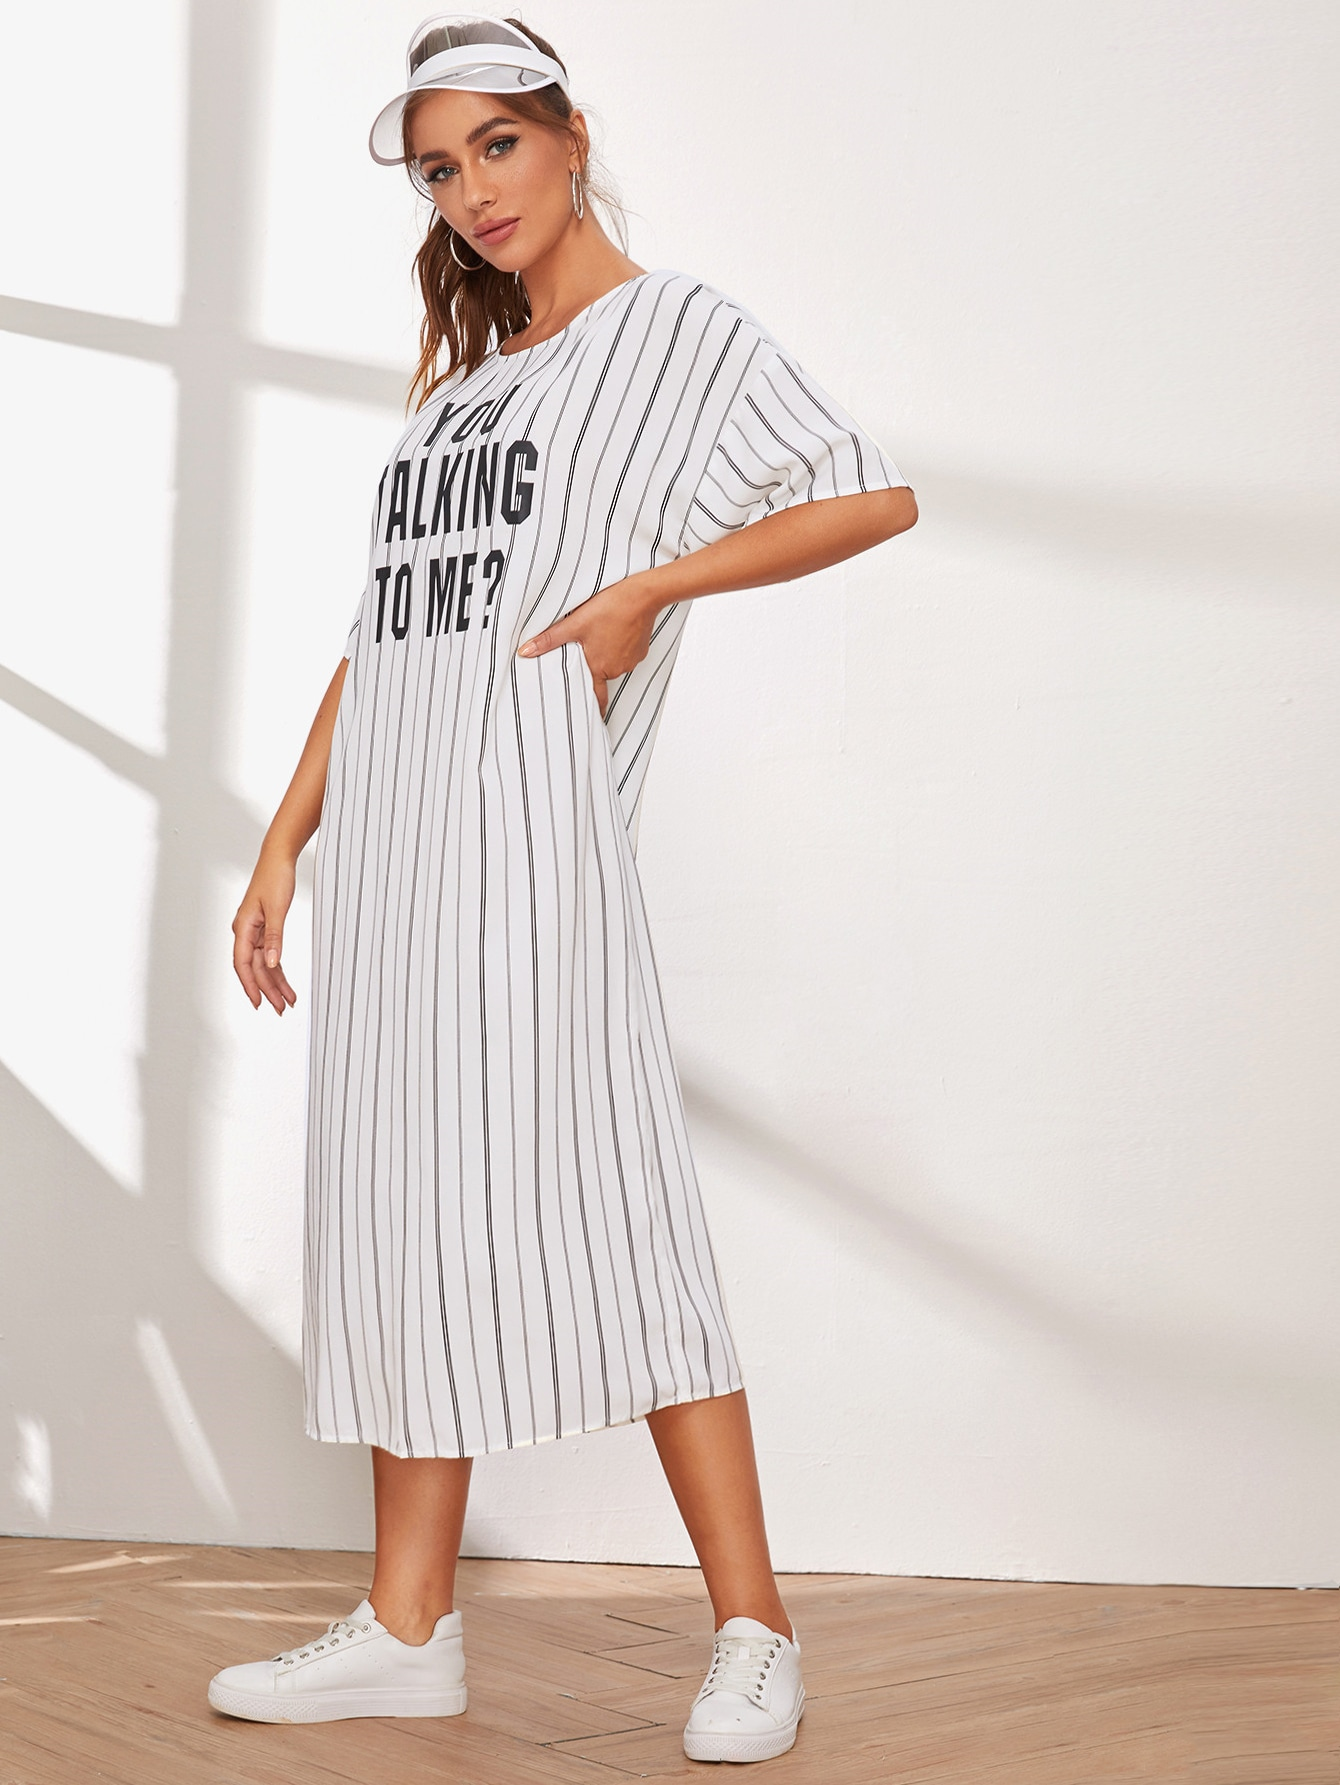 Drop Shoulder Striped & Slogan Print Tunic Dress